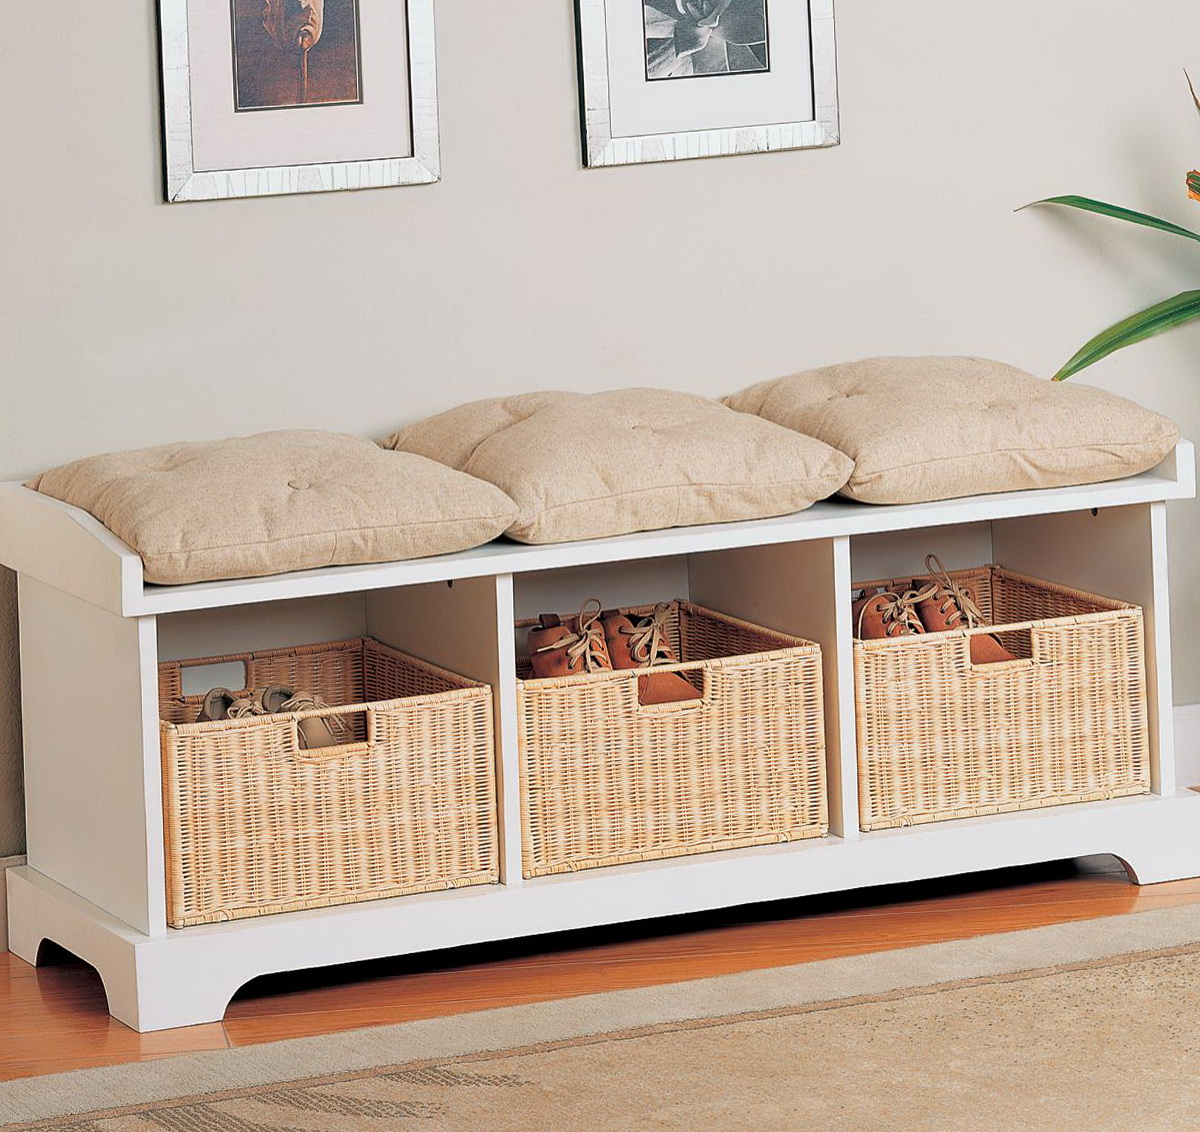 Entryway Bench With Baskets Home Design Ideas